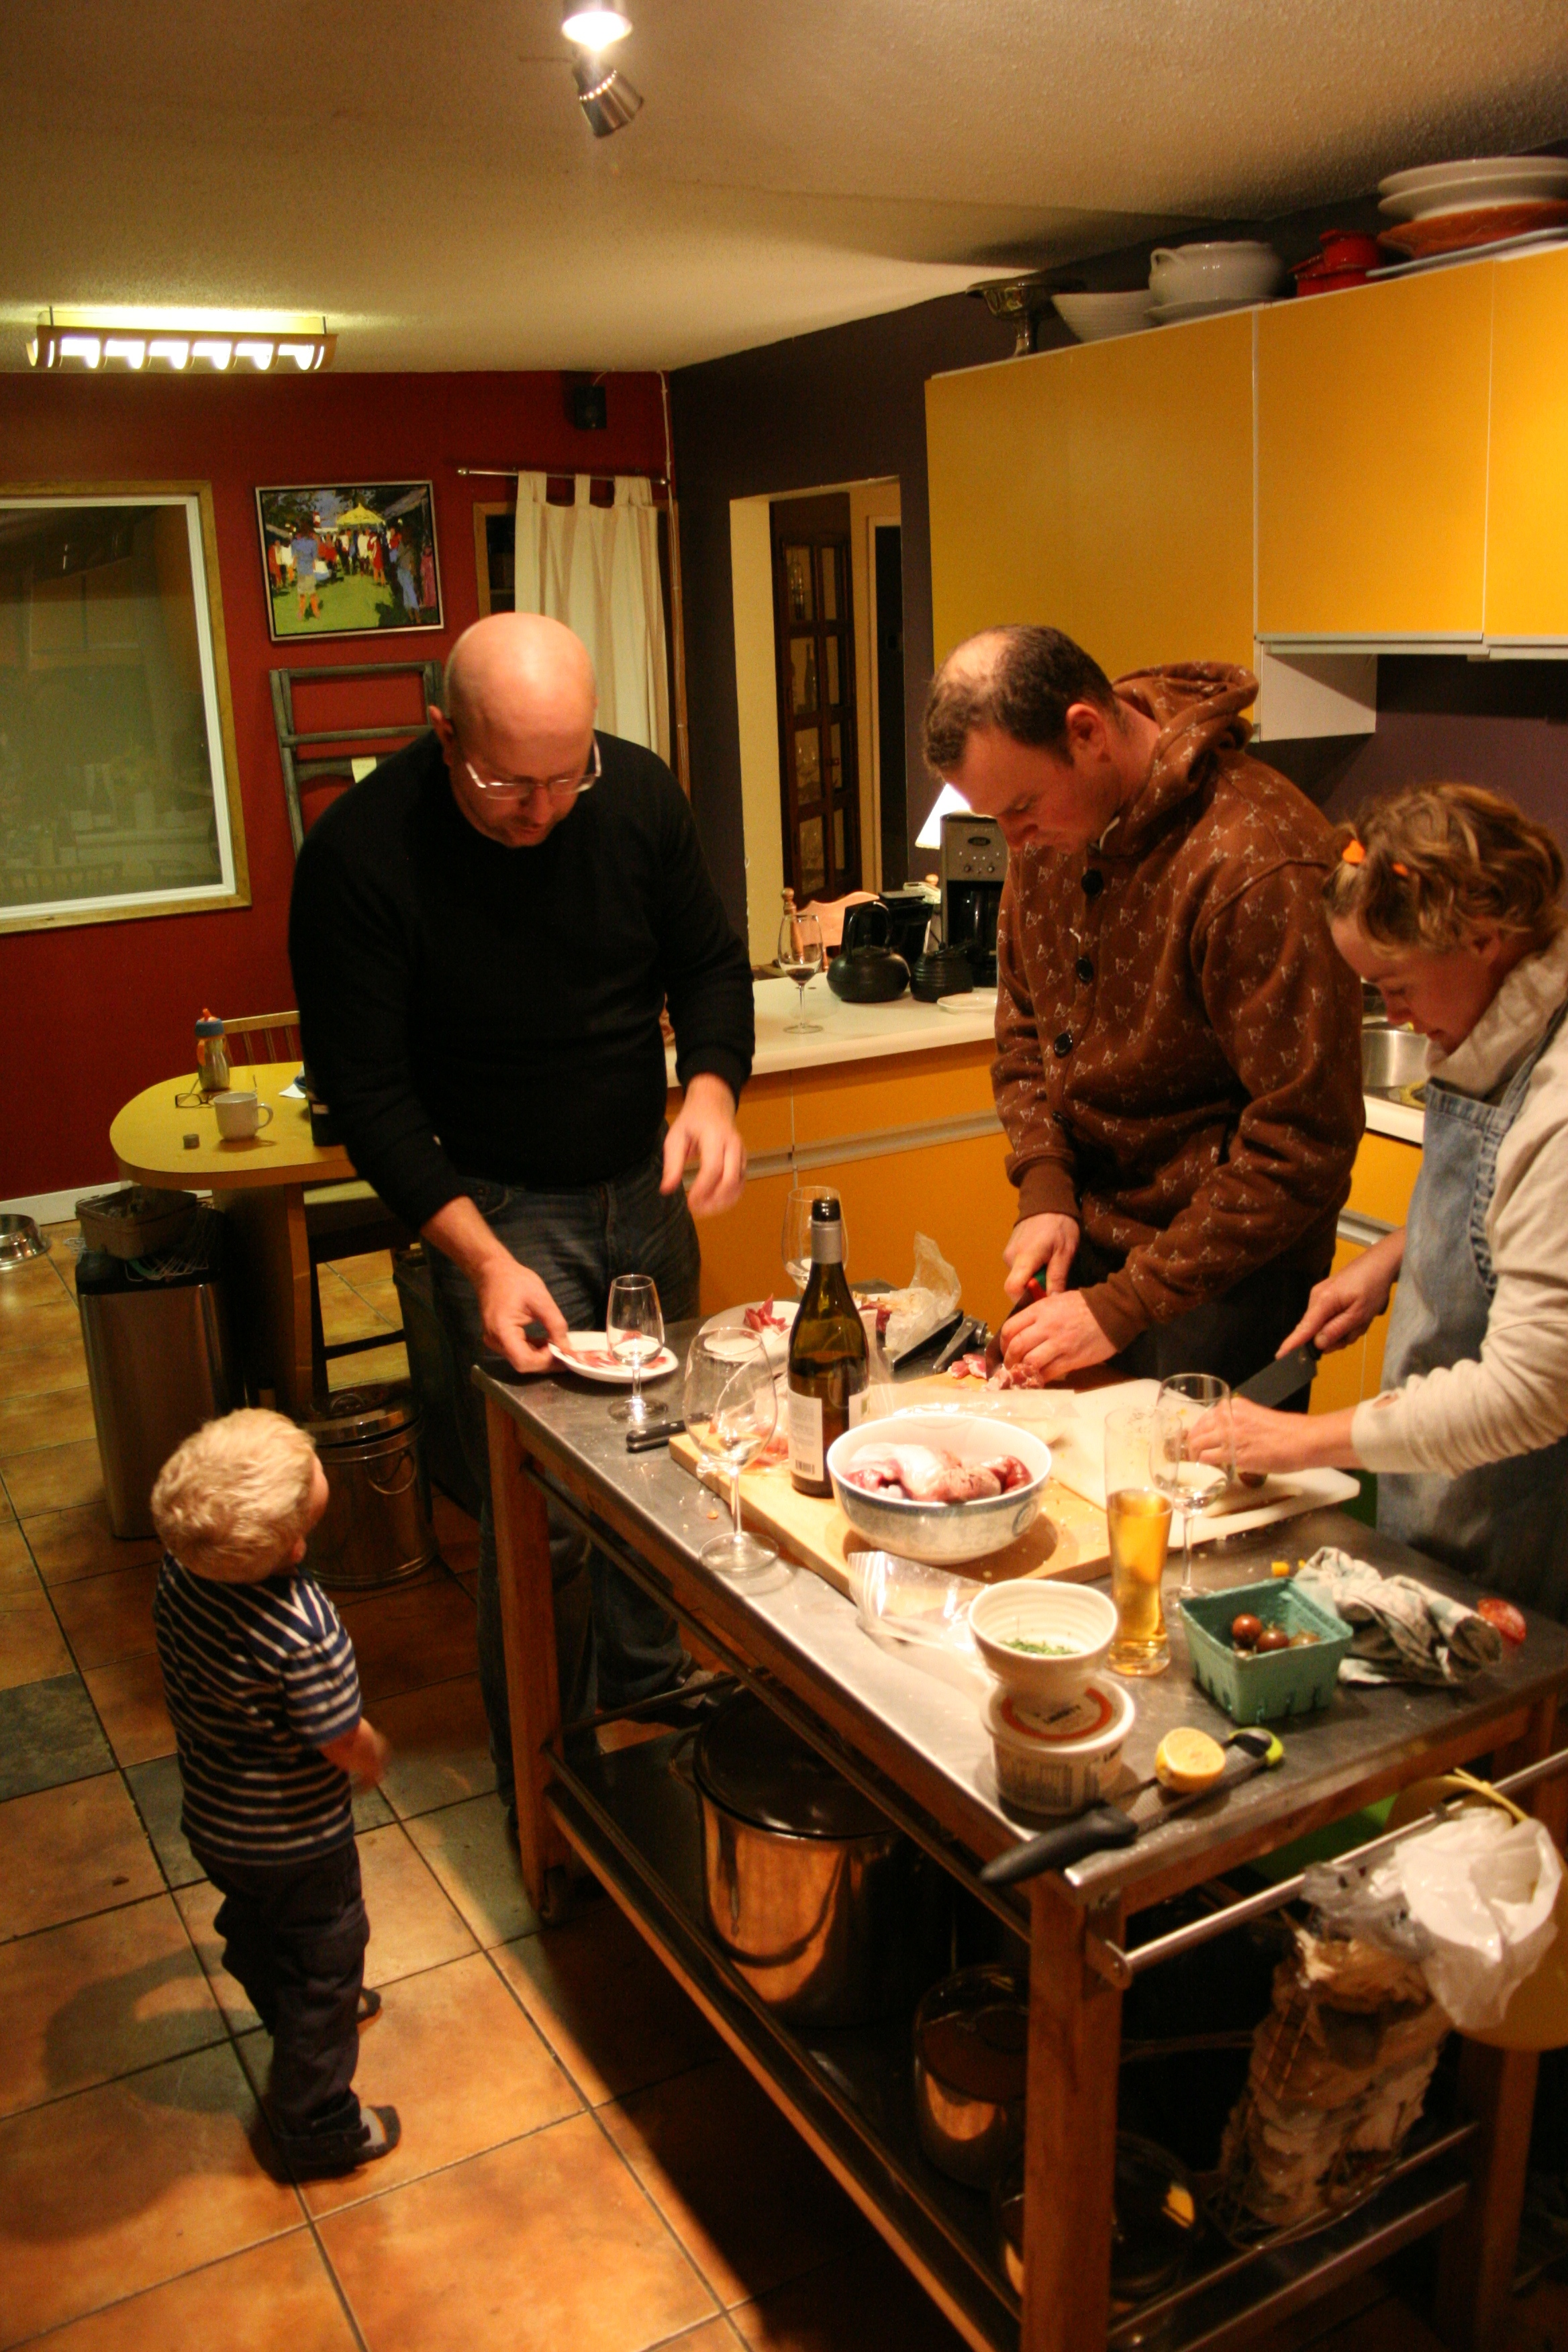 Bustling kitchen prep before dinner...